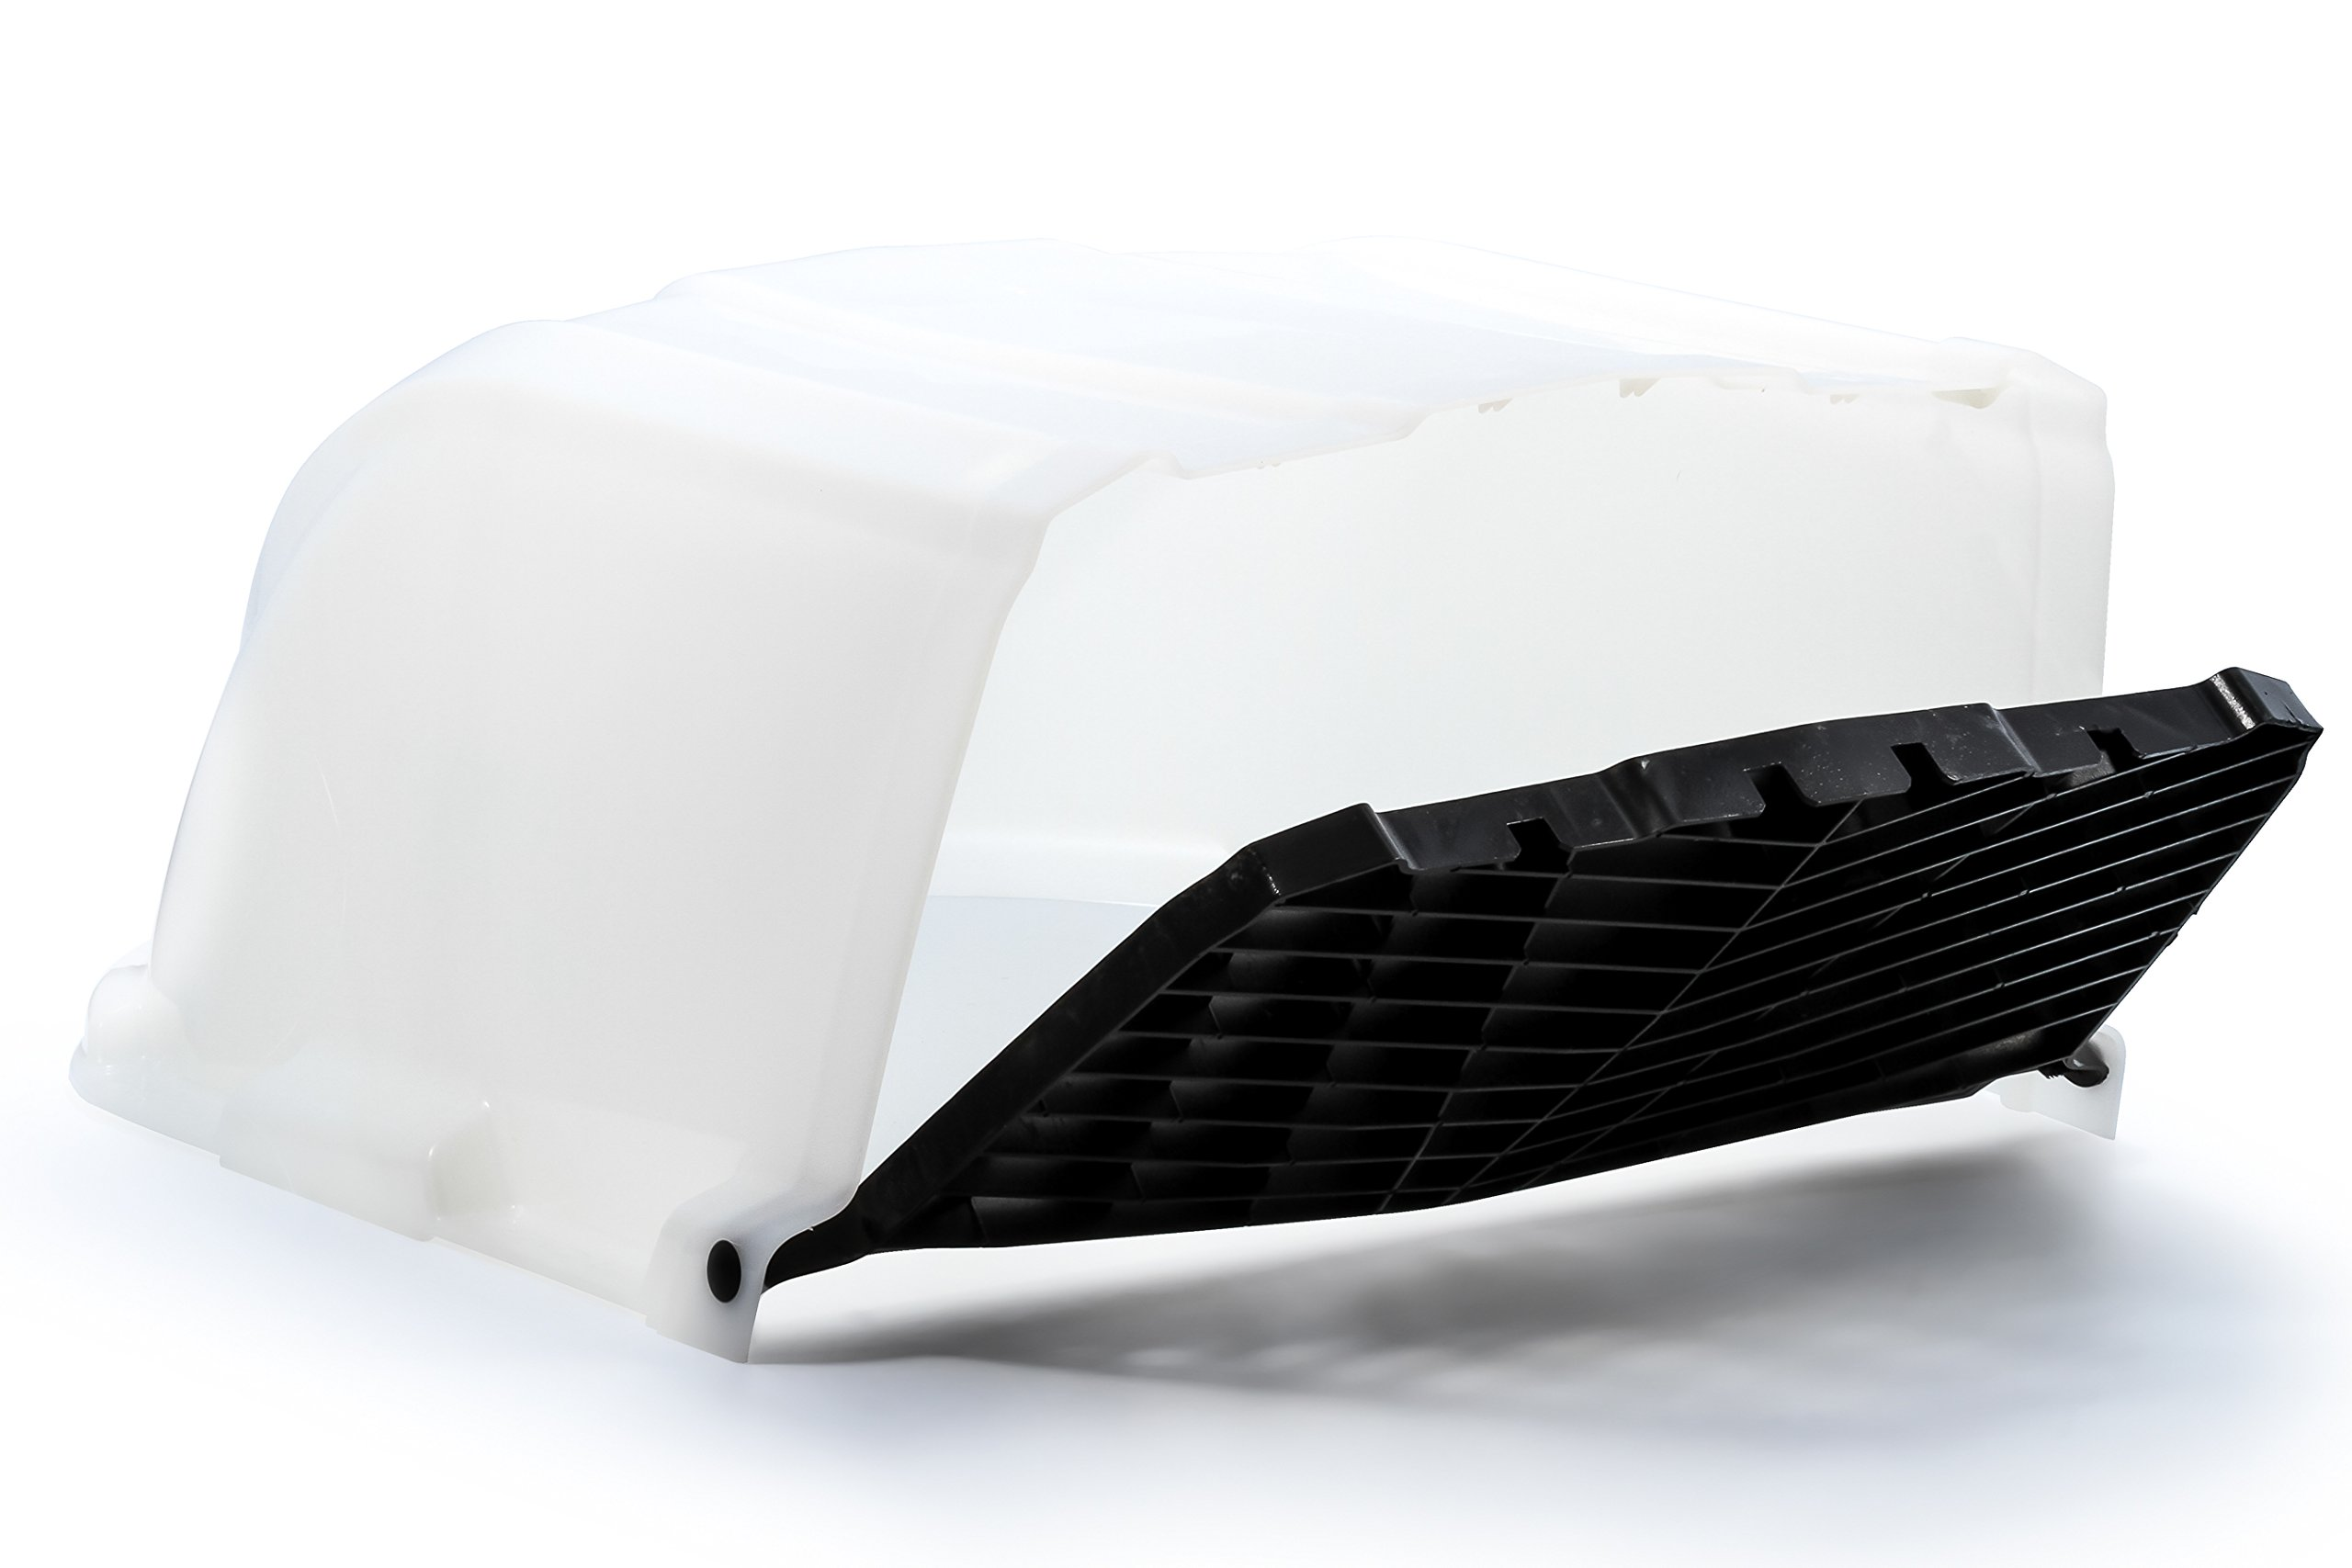 Camco RV XLT High Flow Roof Vent Cover, Opens Easy Cleaning, Aerodynamic Design, Easly Mounts to RV Included Hardware (White)